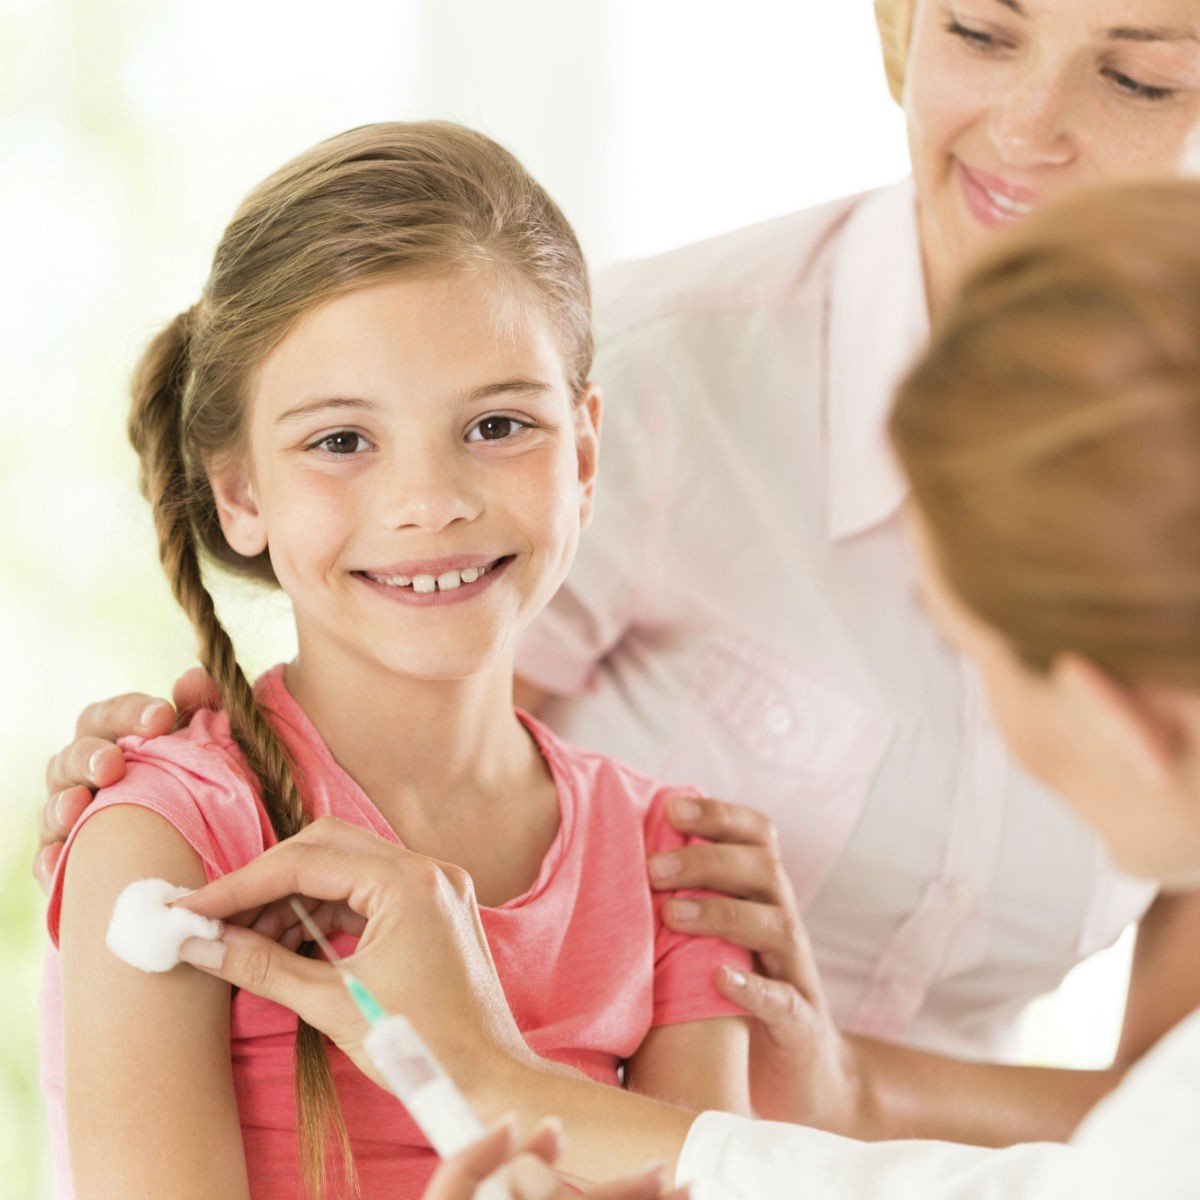 The best way to protect against the flu is to get an annual flu vaccination.